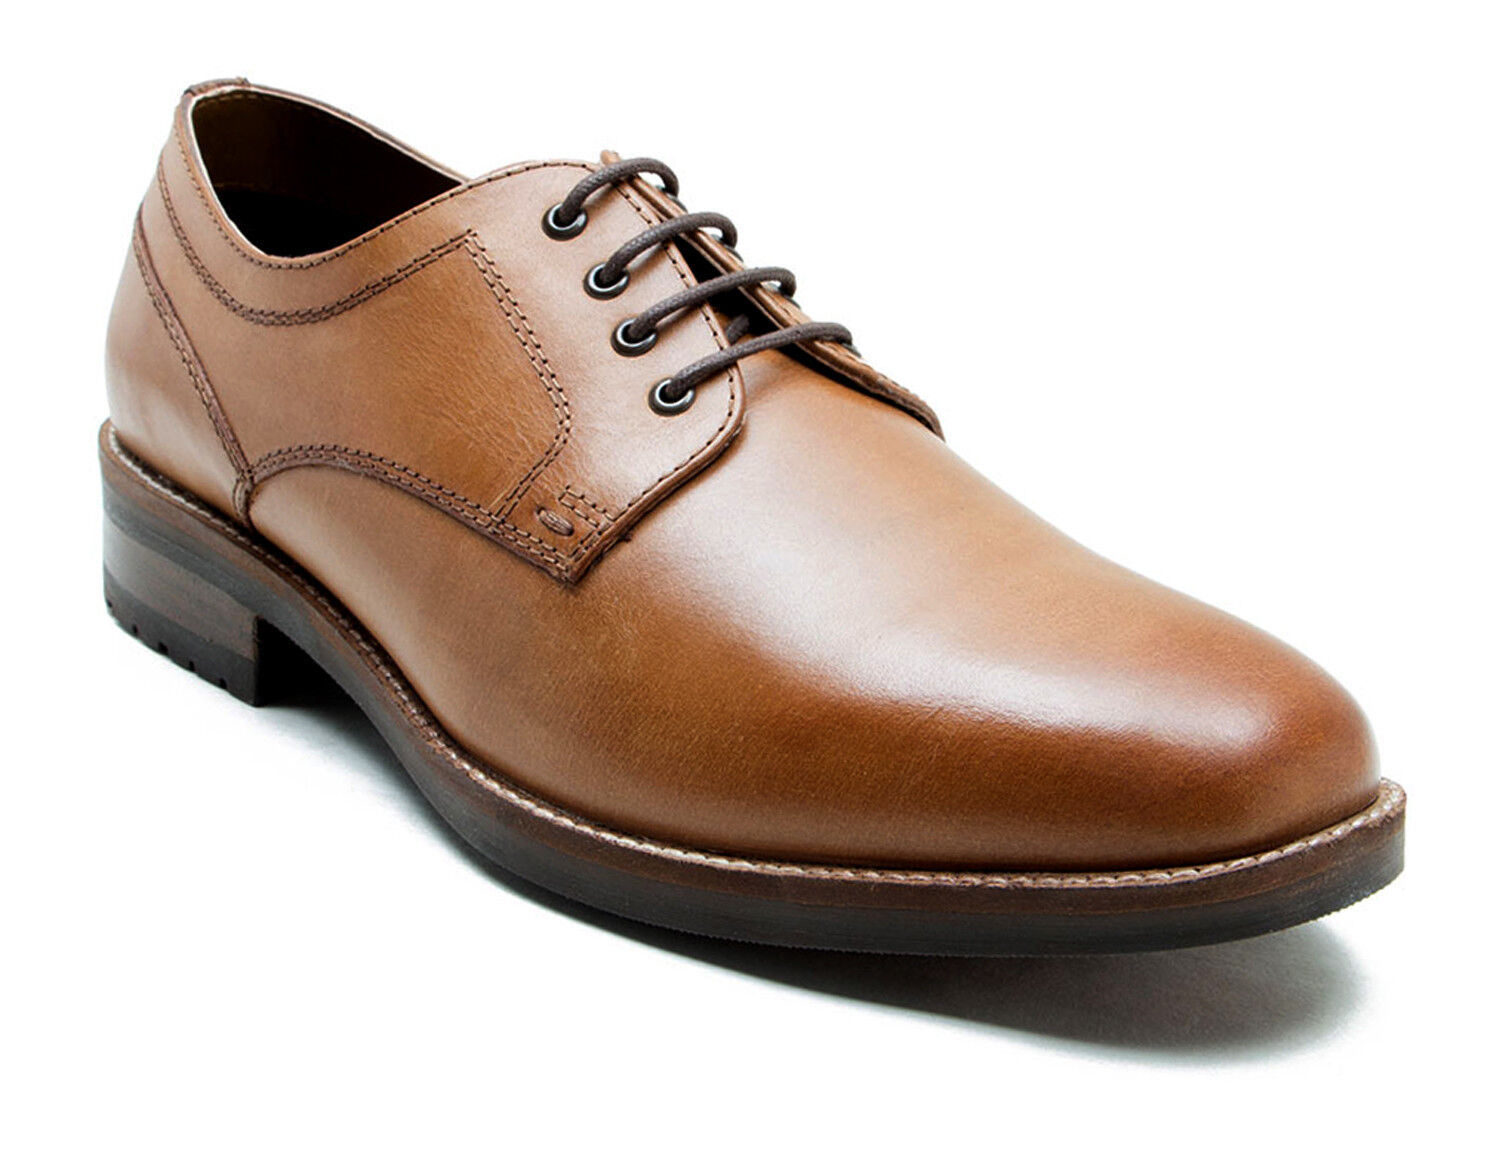 Red Tape Elcot Tan Men's Leather shoes RRP  Free UK P&P